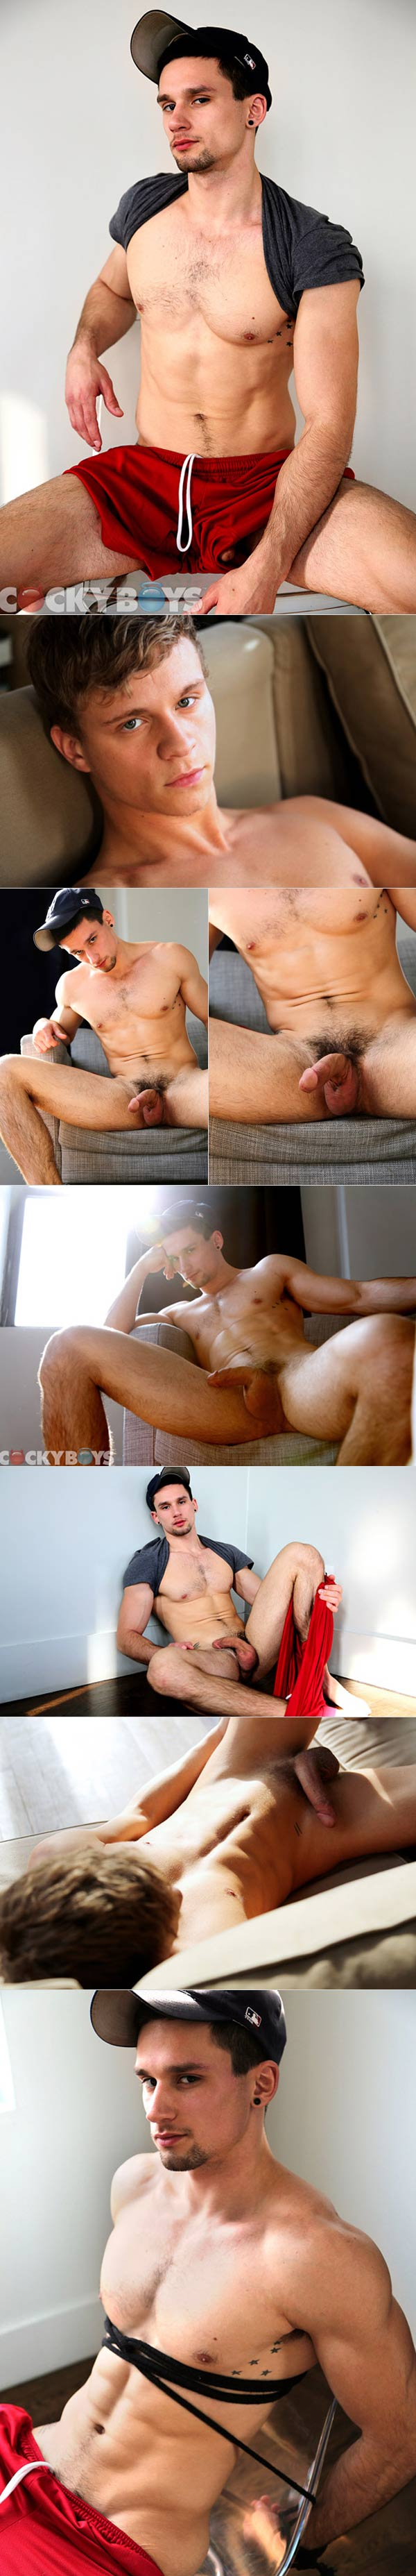 Anthony Romero Drills and Spills On Max Ryder! at CockyBoys.com